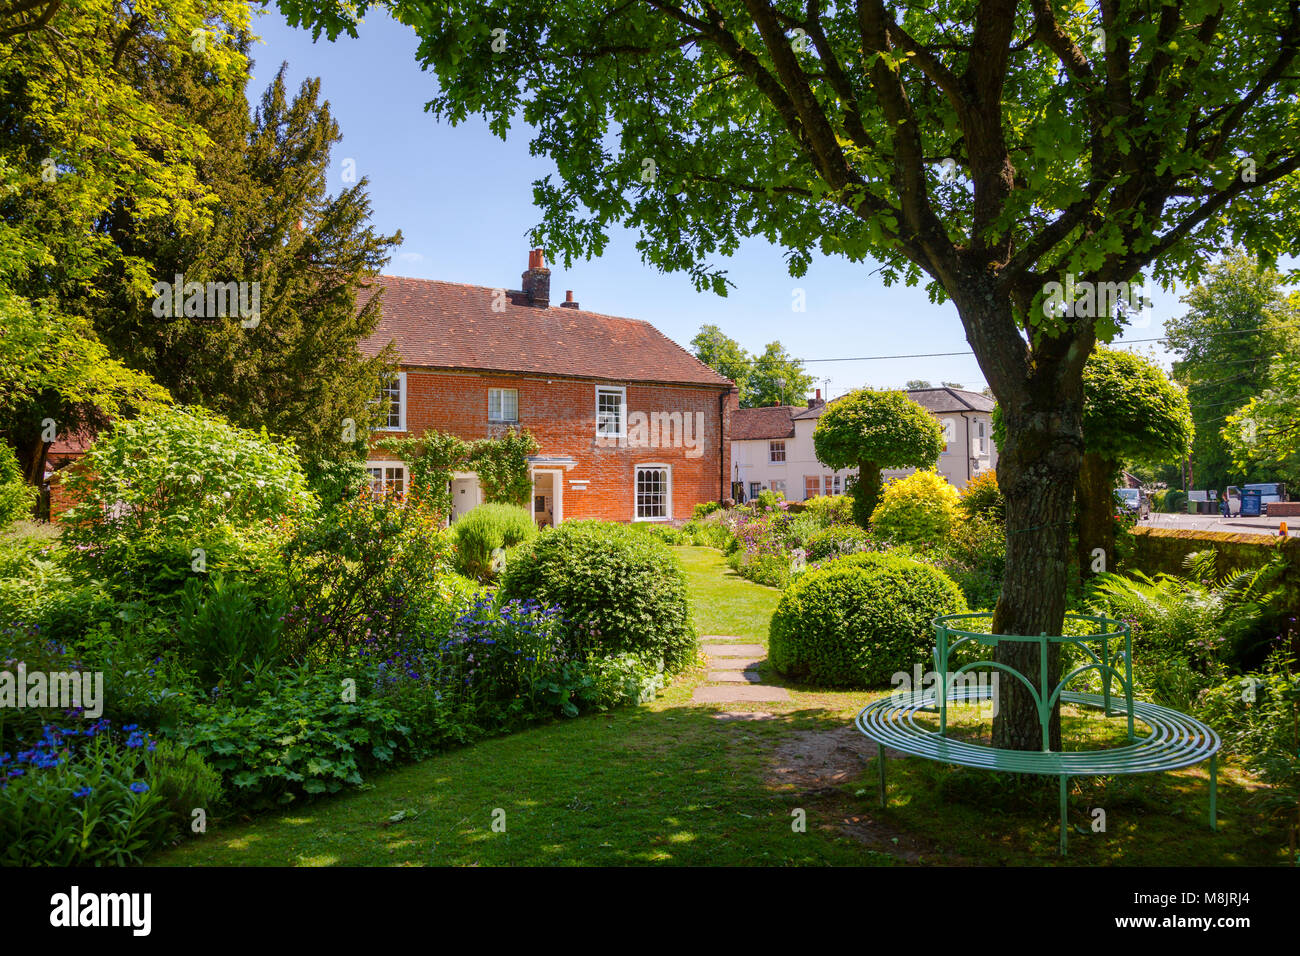 CHAWTON, UK - JUN 8, 2013: Round bench at formal garden of Chawton Cottage, an independent museum of novelist Jane - Stock Image